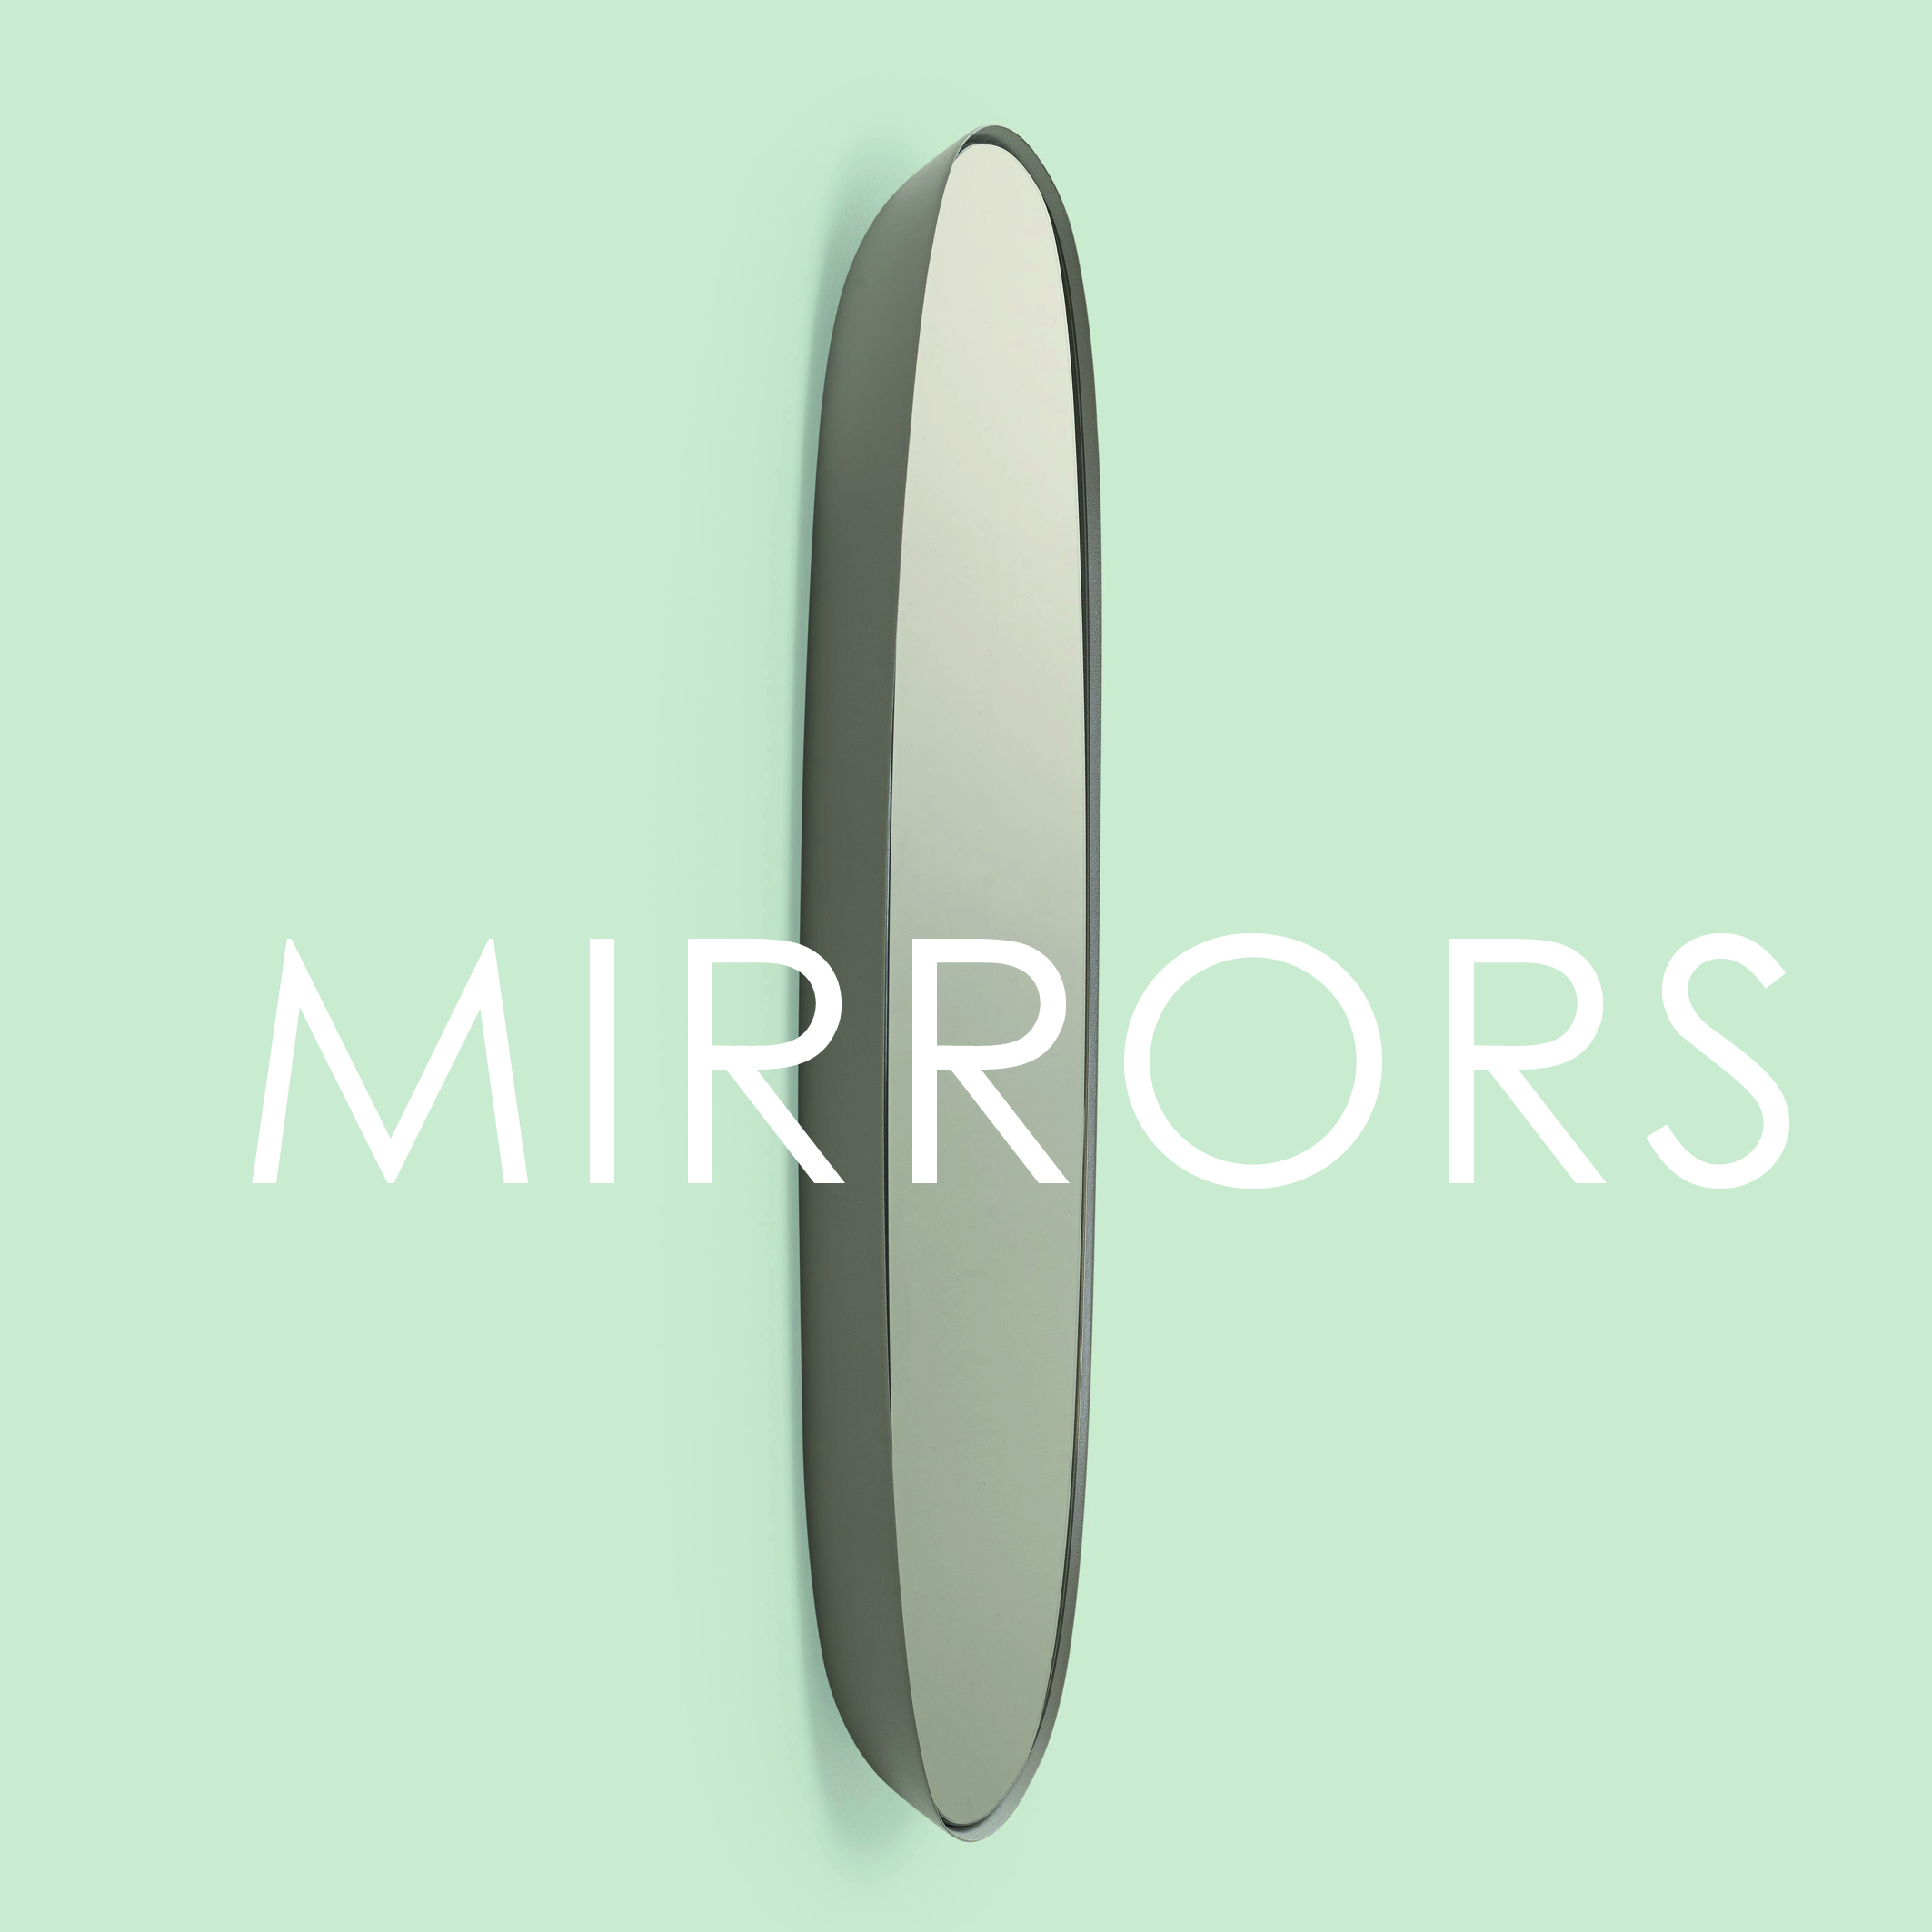 Mirrors  front cover.jpg